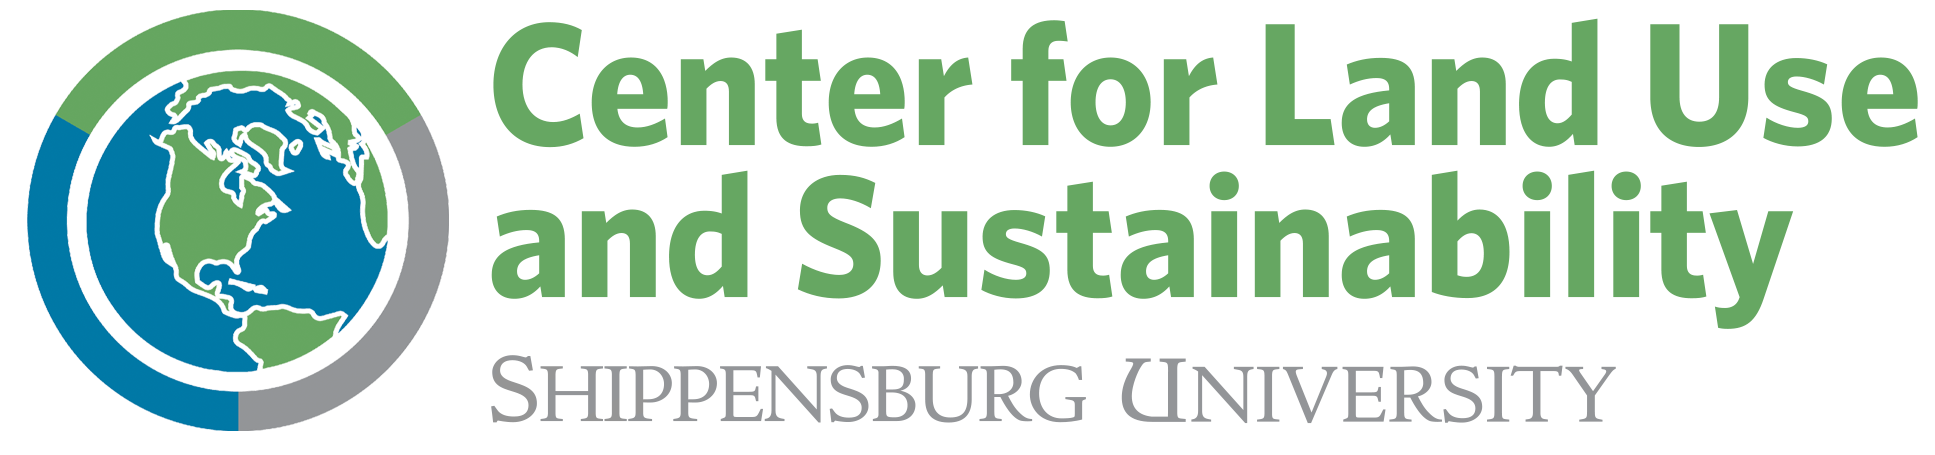 Center for Land Use and Sustainability